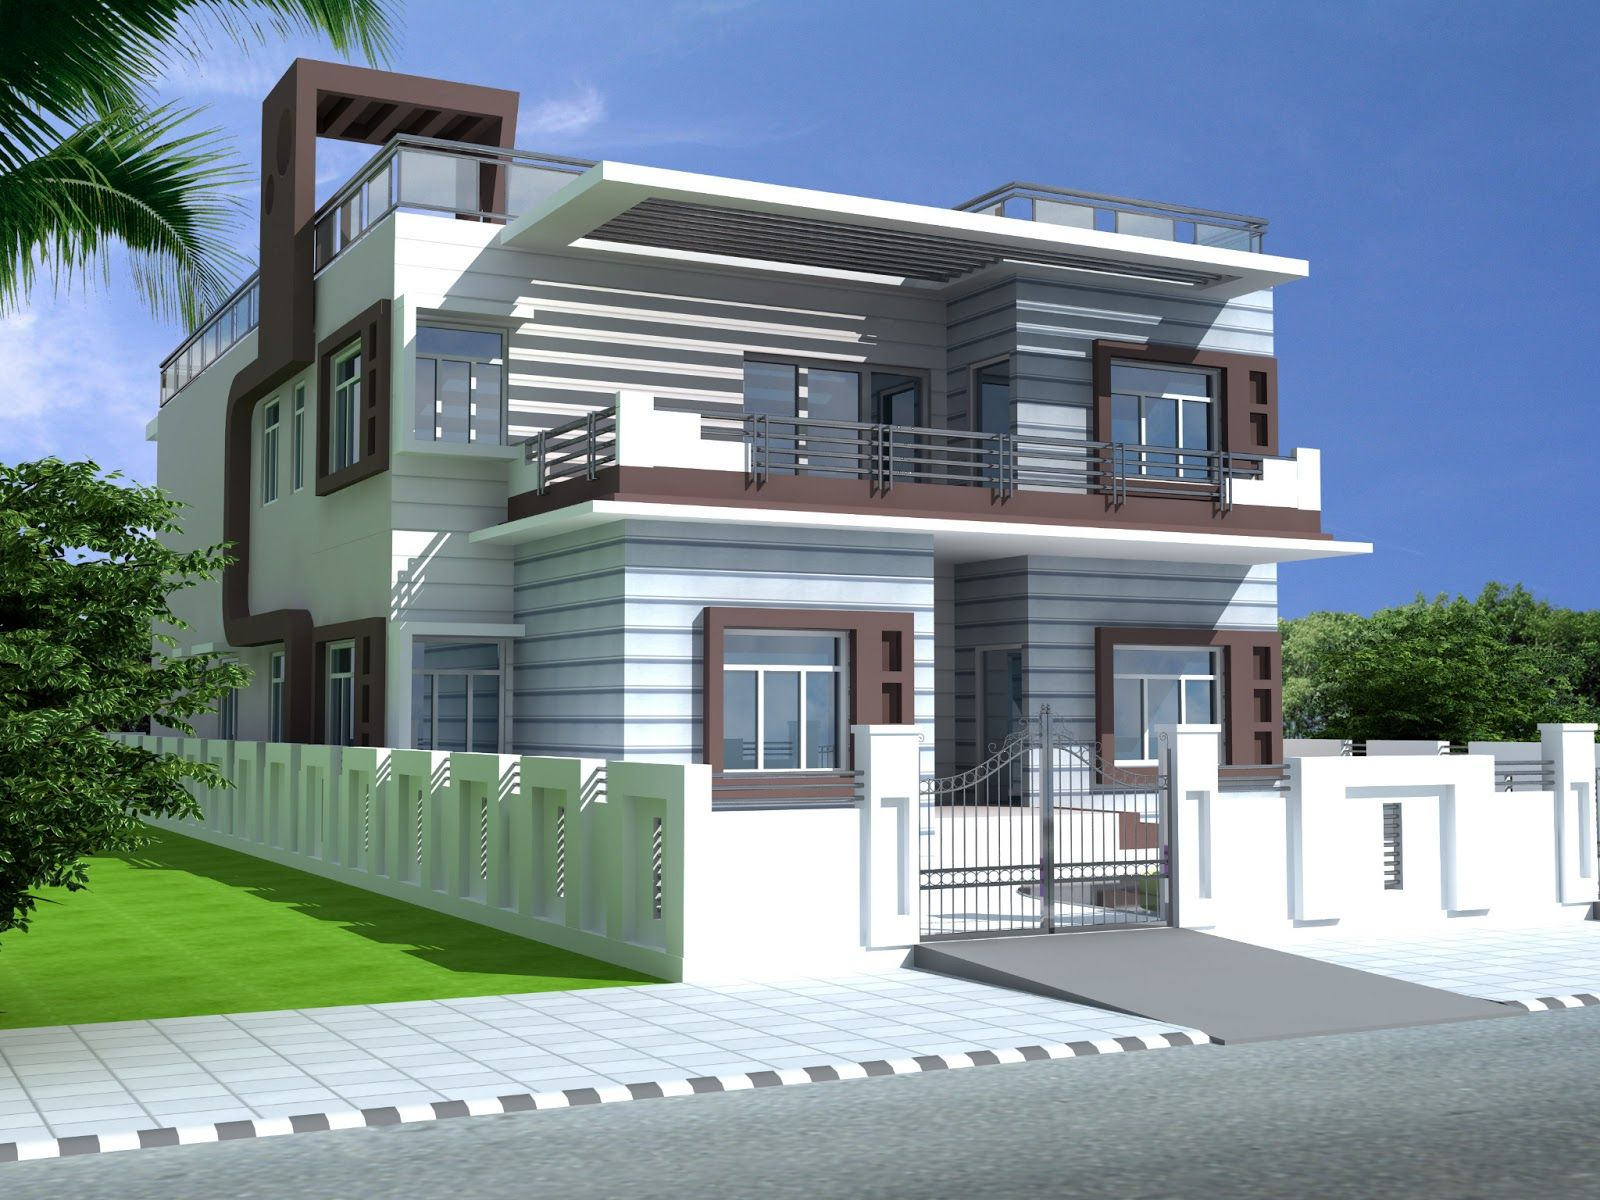 6 bedrooms duplex house design in 390m2 13m x 30m for Building front design